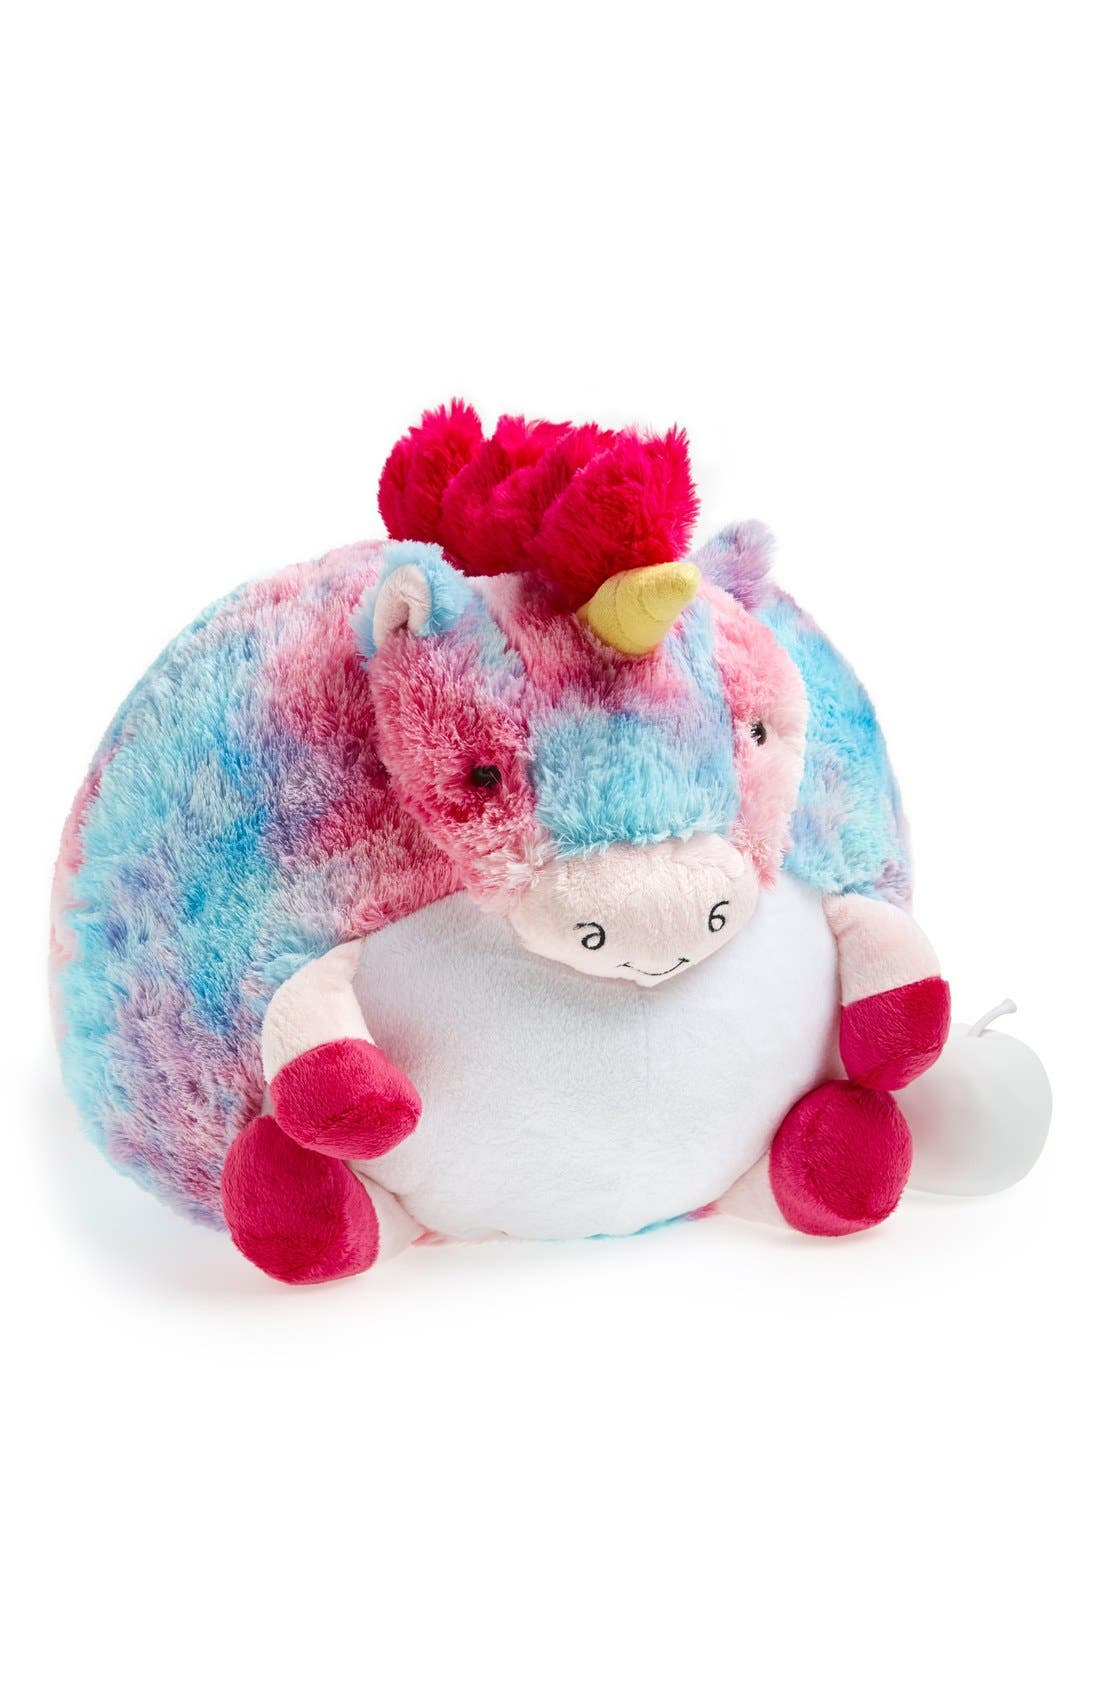 Main Image - Squishable 'Unicorn - Prism' Plush Stuffed Animal